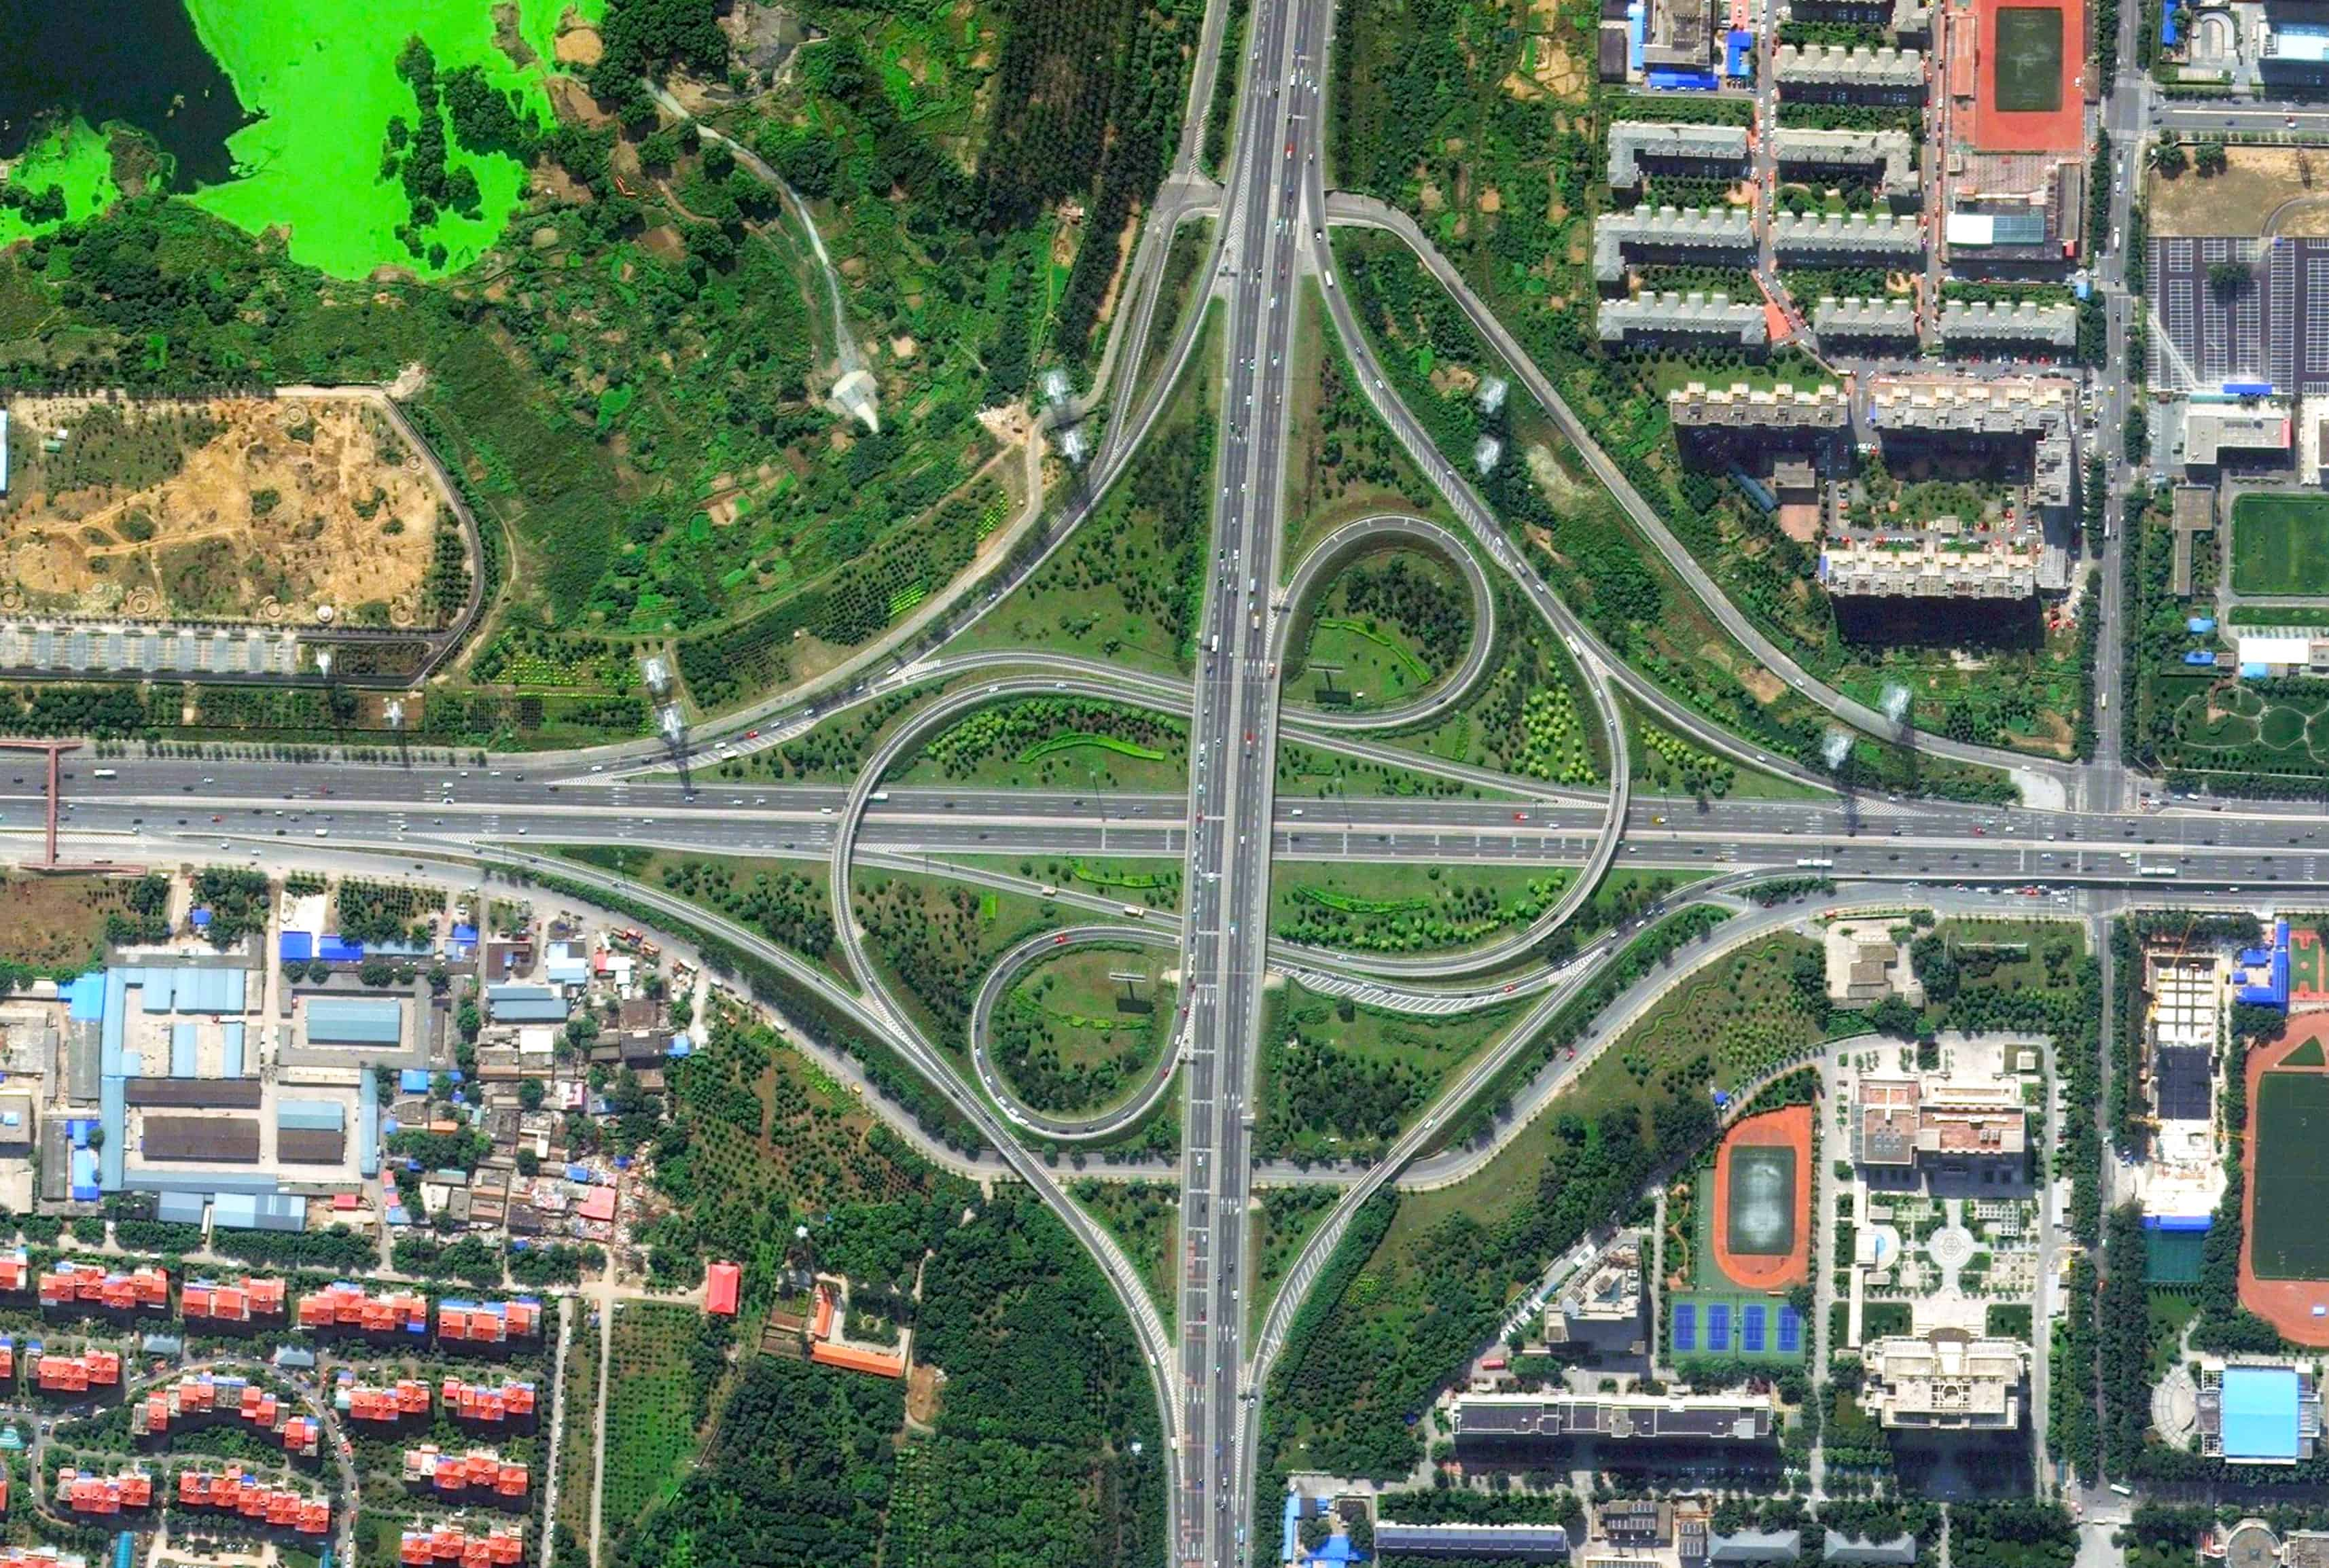 Jin Yuan Bridge, Beijing, China - Aerial View - Transport and Infrastructure Intersection - Urban Planning